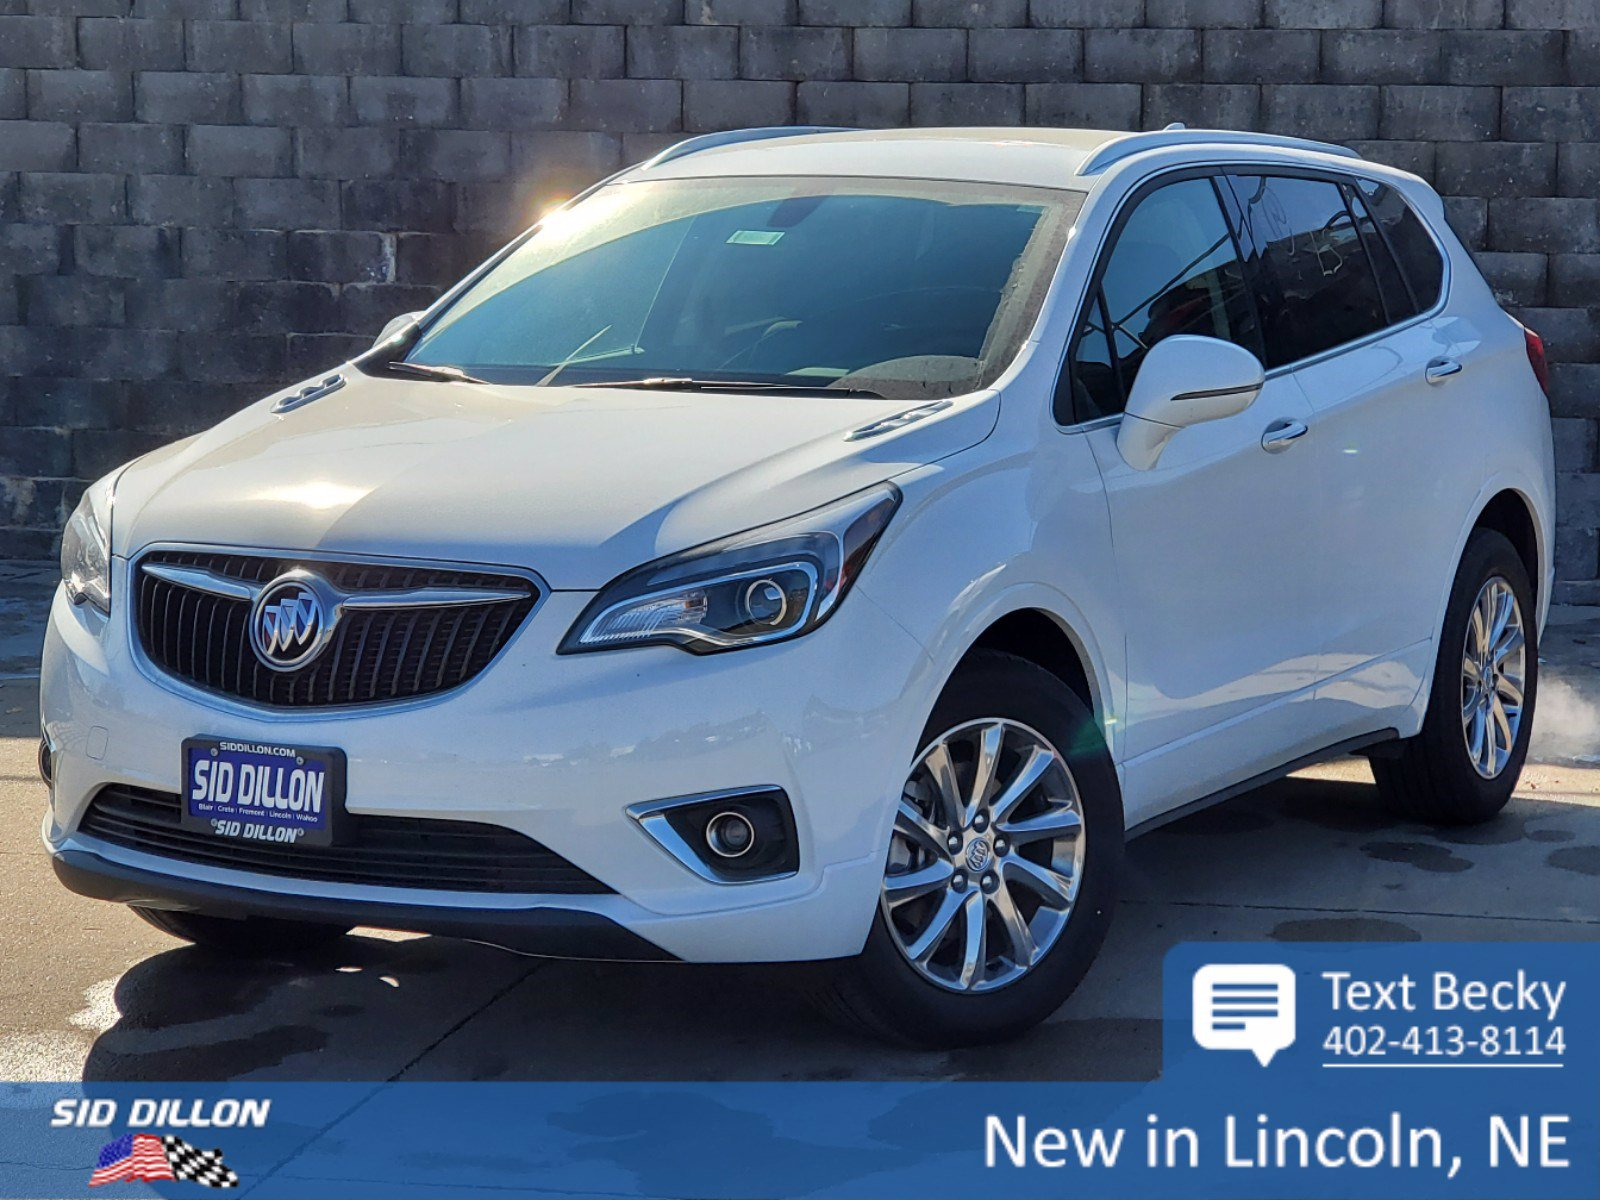 New 2020 Buick Envision Essence Awd 2021 Buick Envision Hp, Incentives, Infotainment Manual